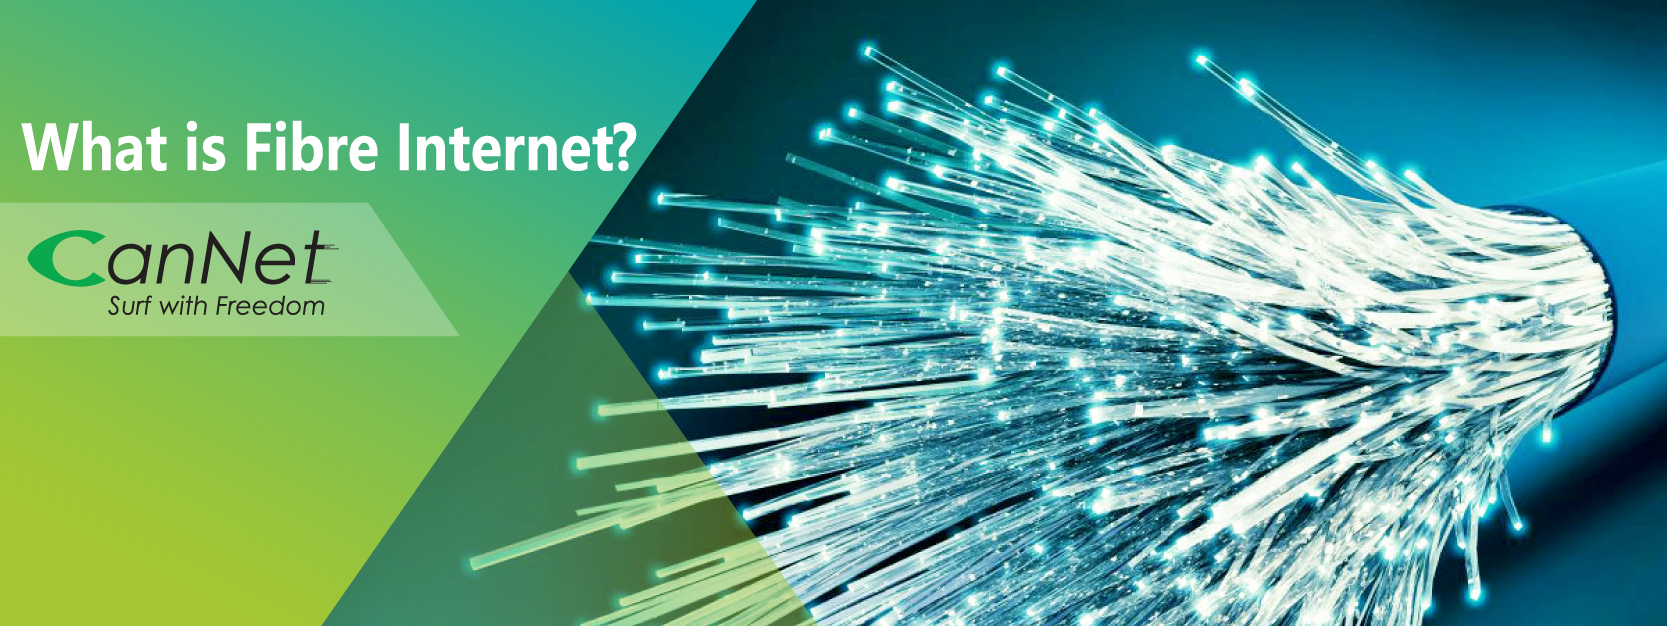 What is Fibre Internet?